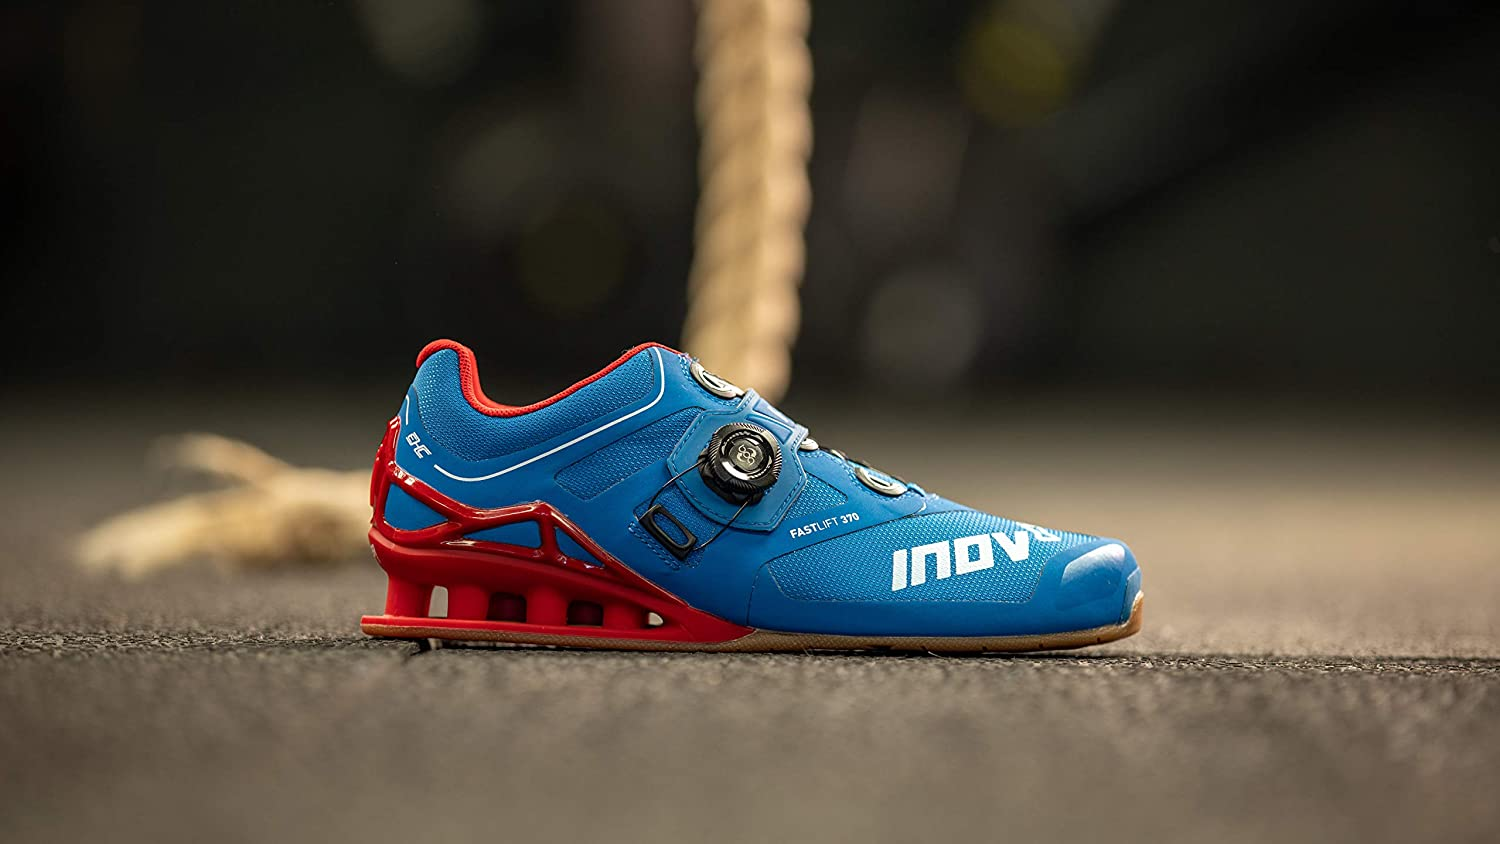 Inov-8 Lifting Mens Fastlift 370 BOA - Powerlifting Shoes for Heavy Weightlifting - Squat Shoe - 4 July Exclusive - Wide Toe Box Blue/Red